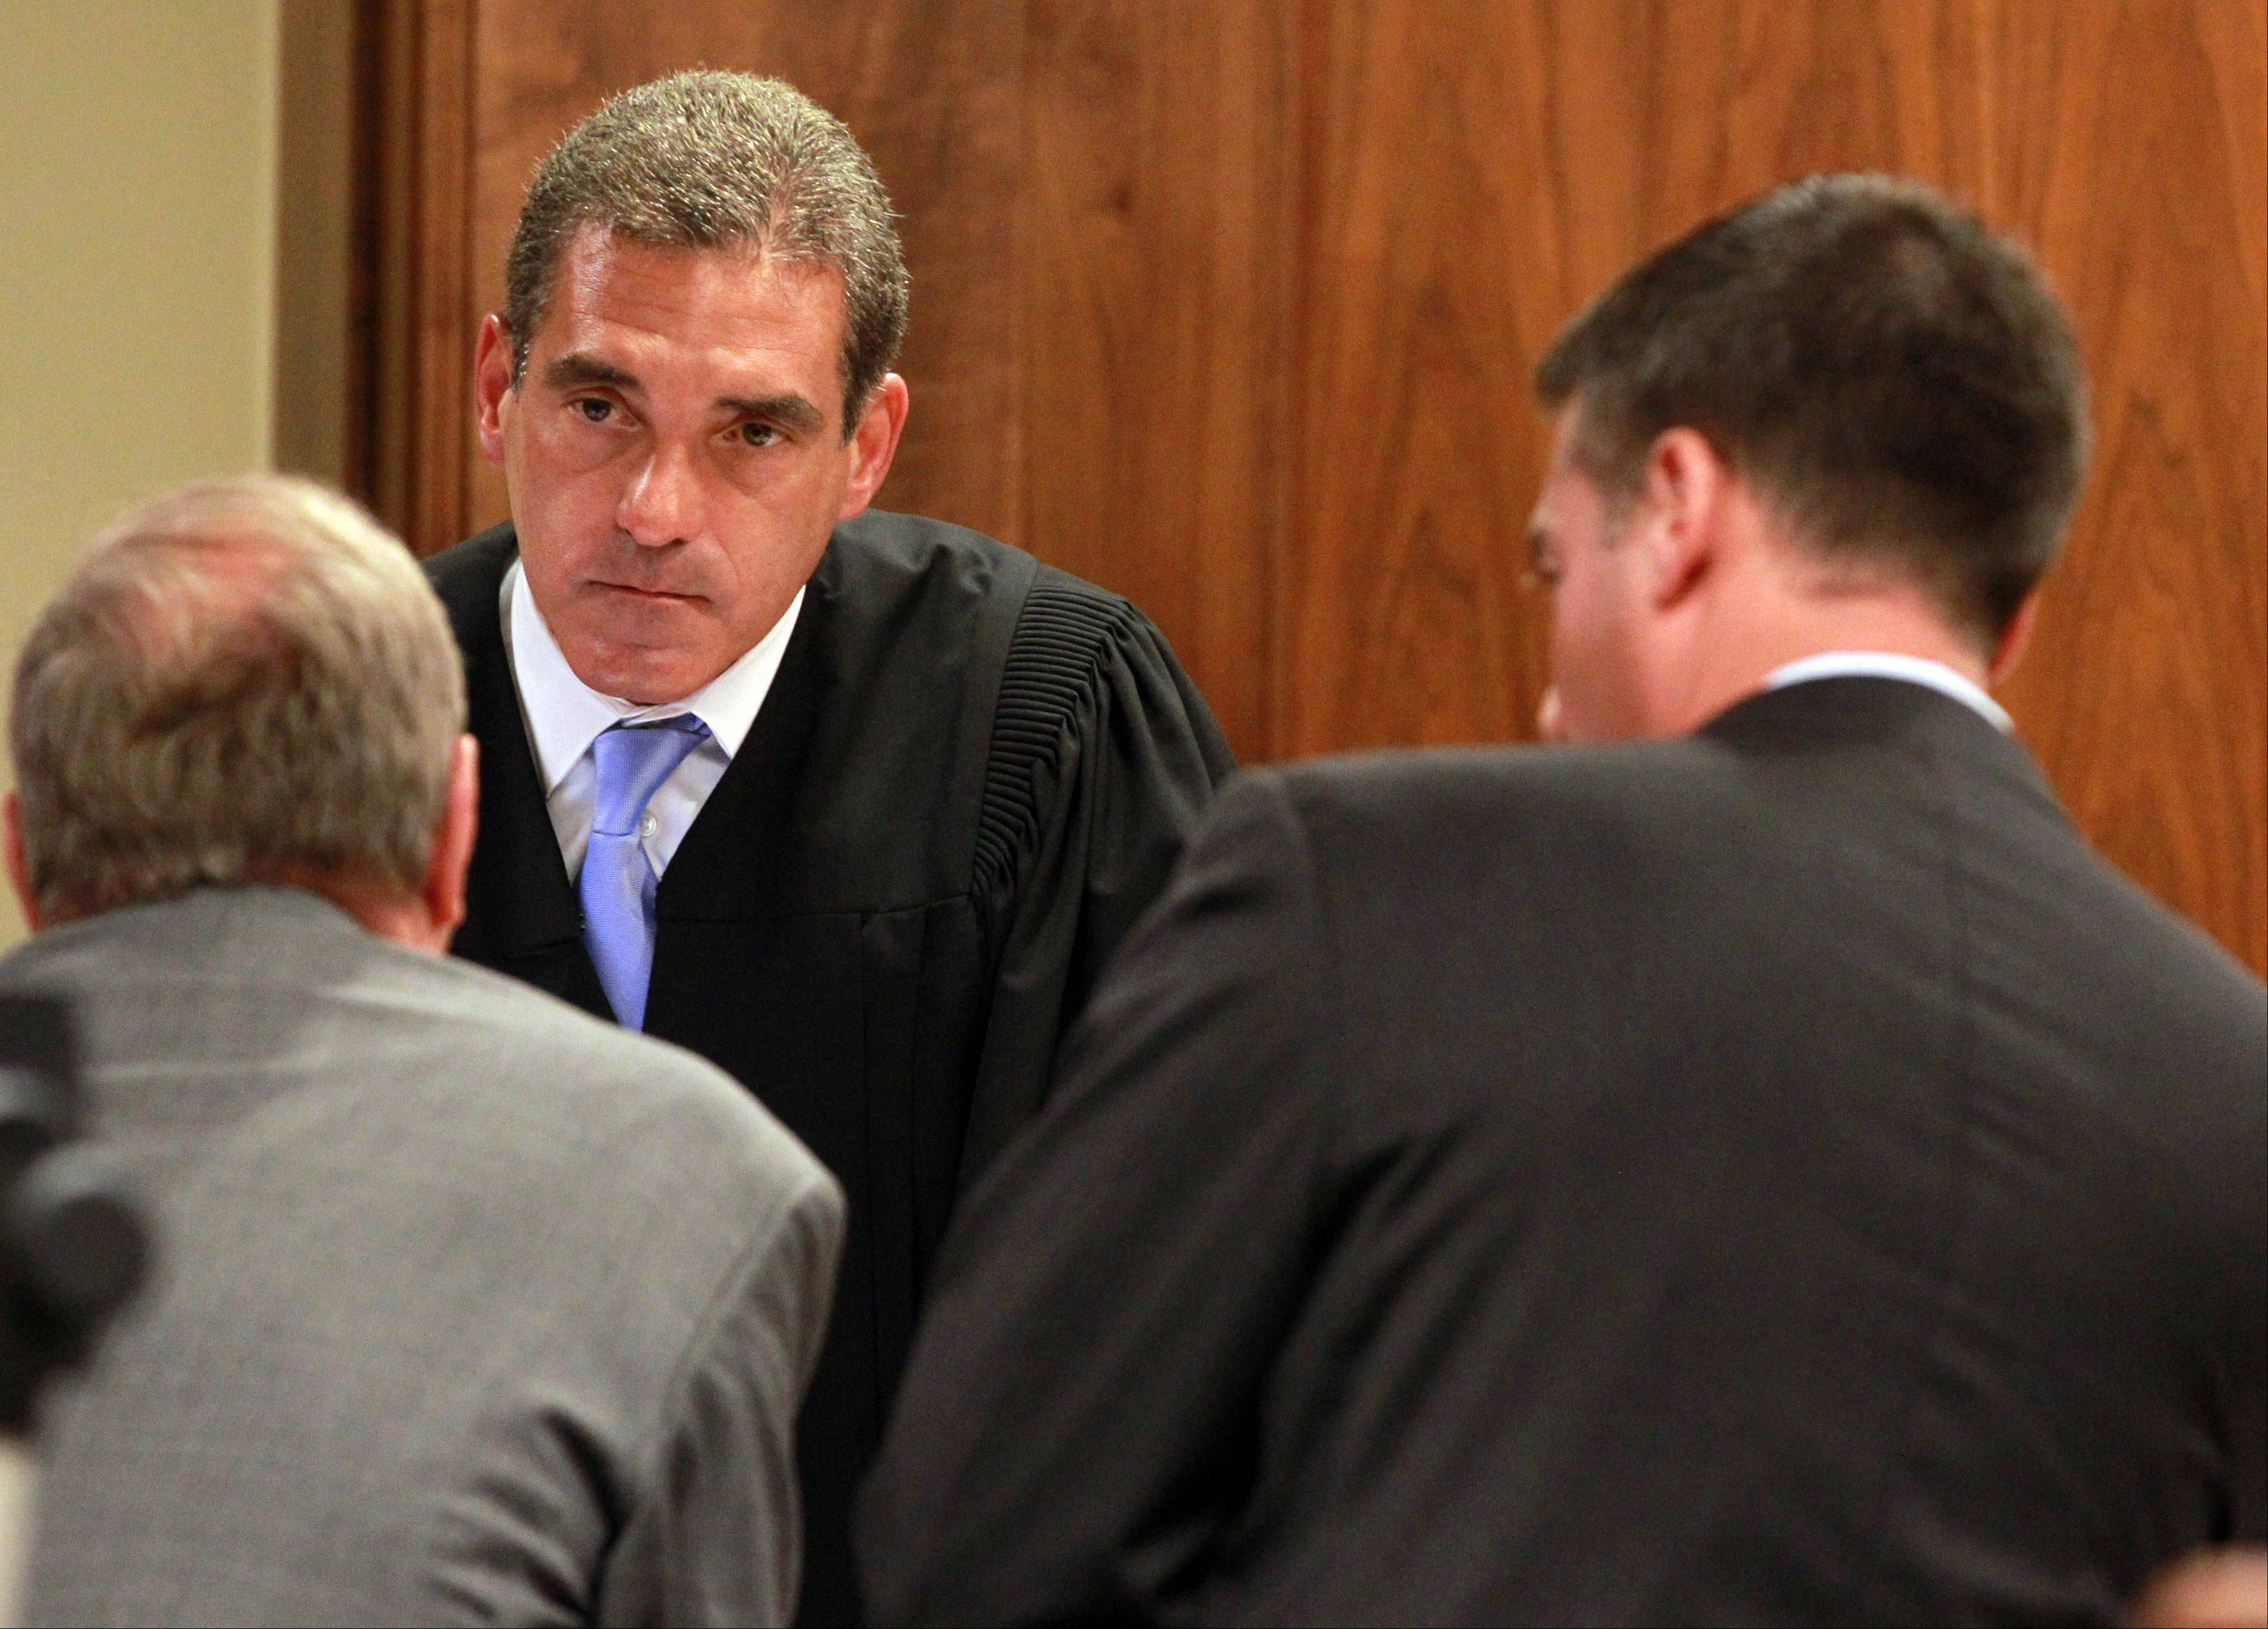 Lake County Judge Mark Levitt listens intently to the objections of defense attorneys during the murder trial of Ronald Stolberg in Waukegan on Wednesday.